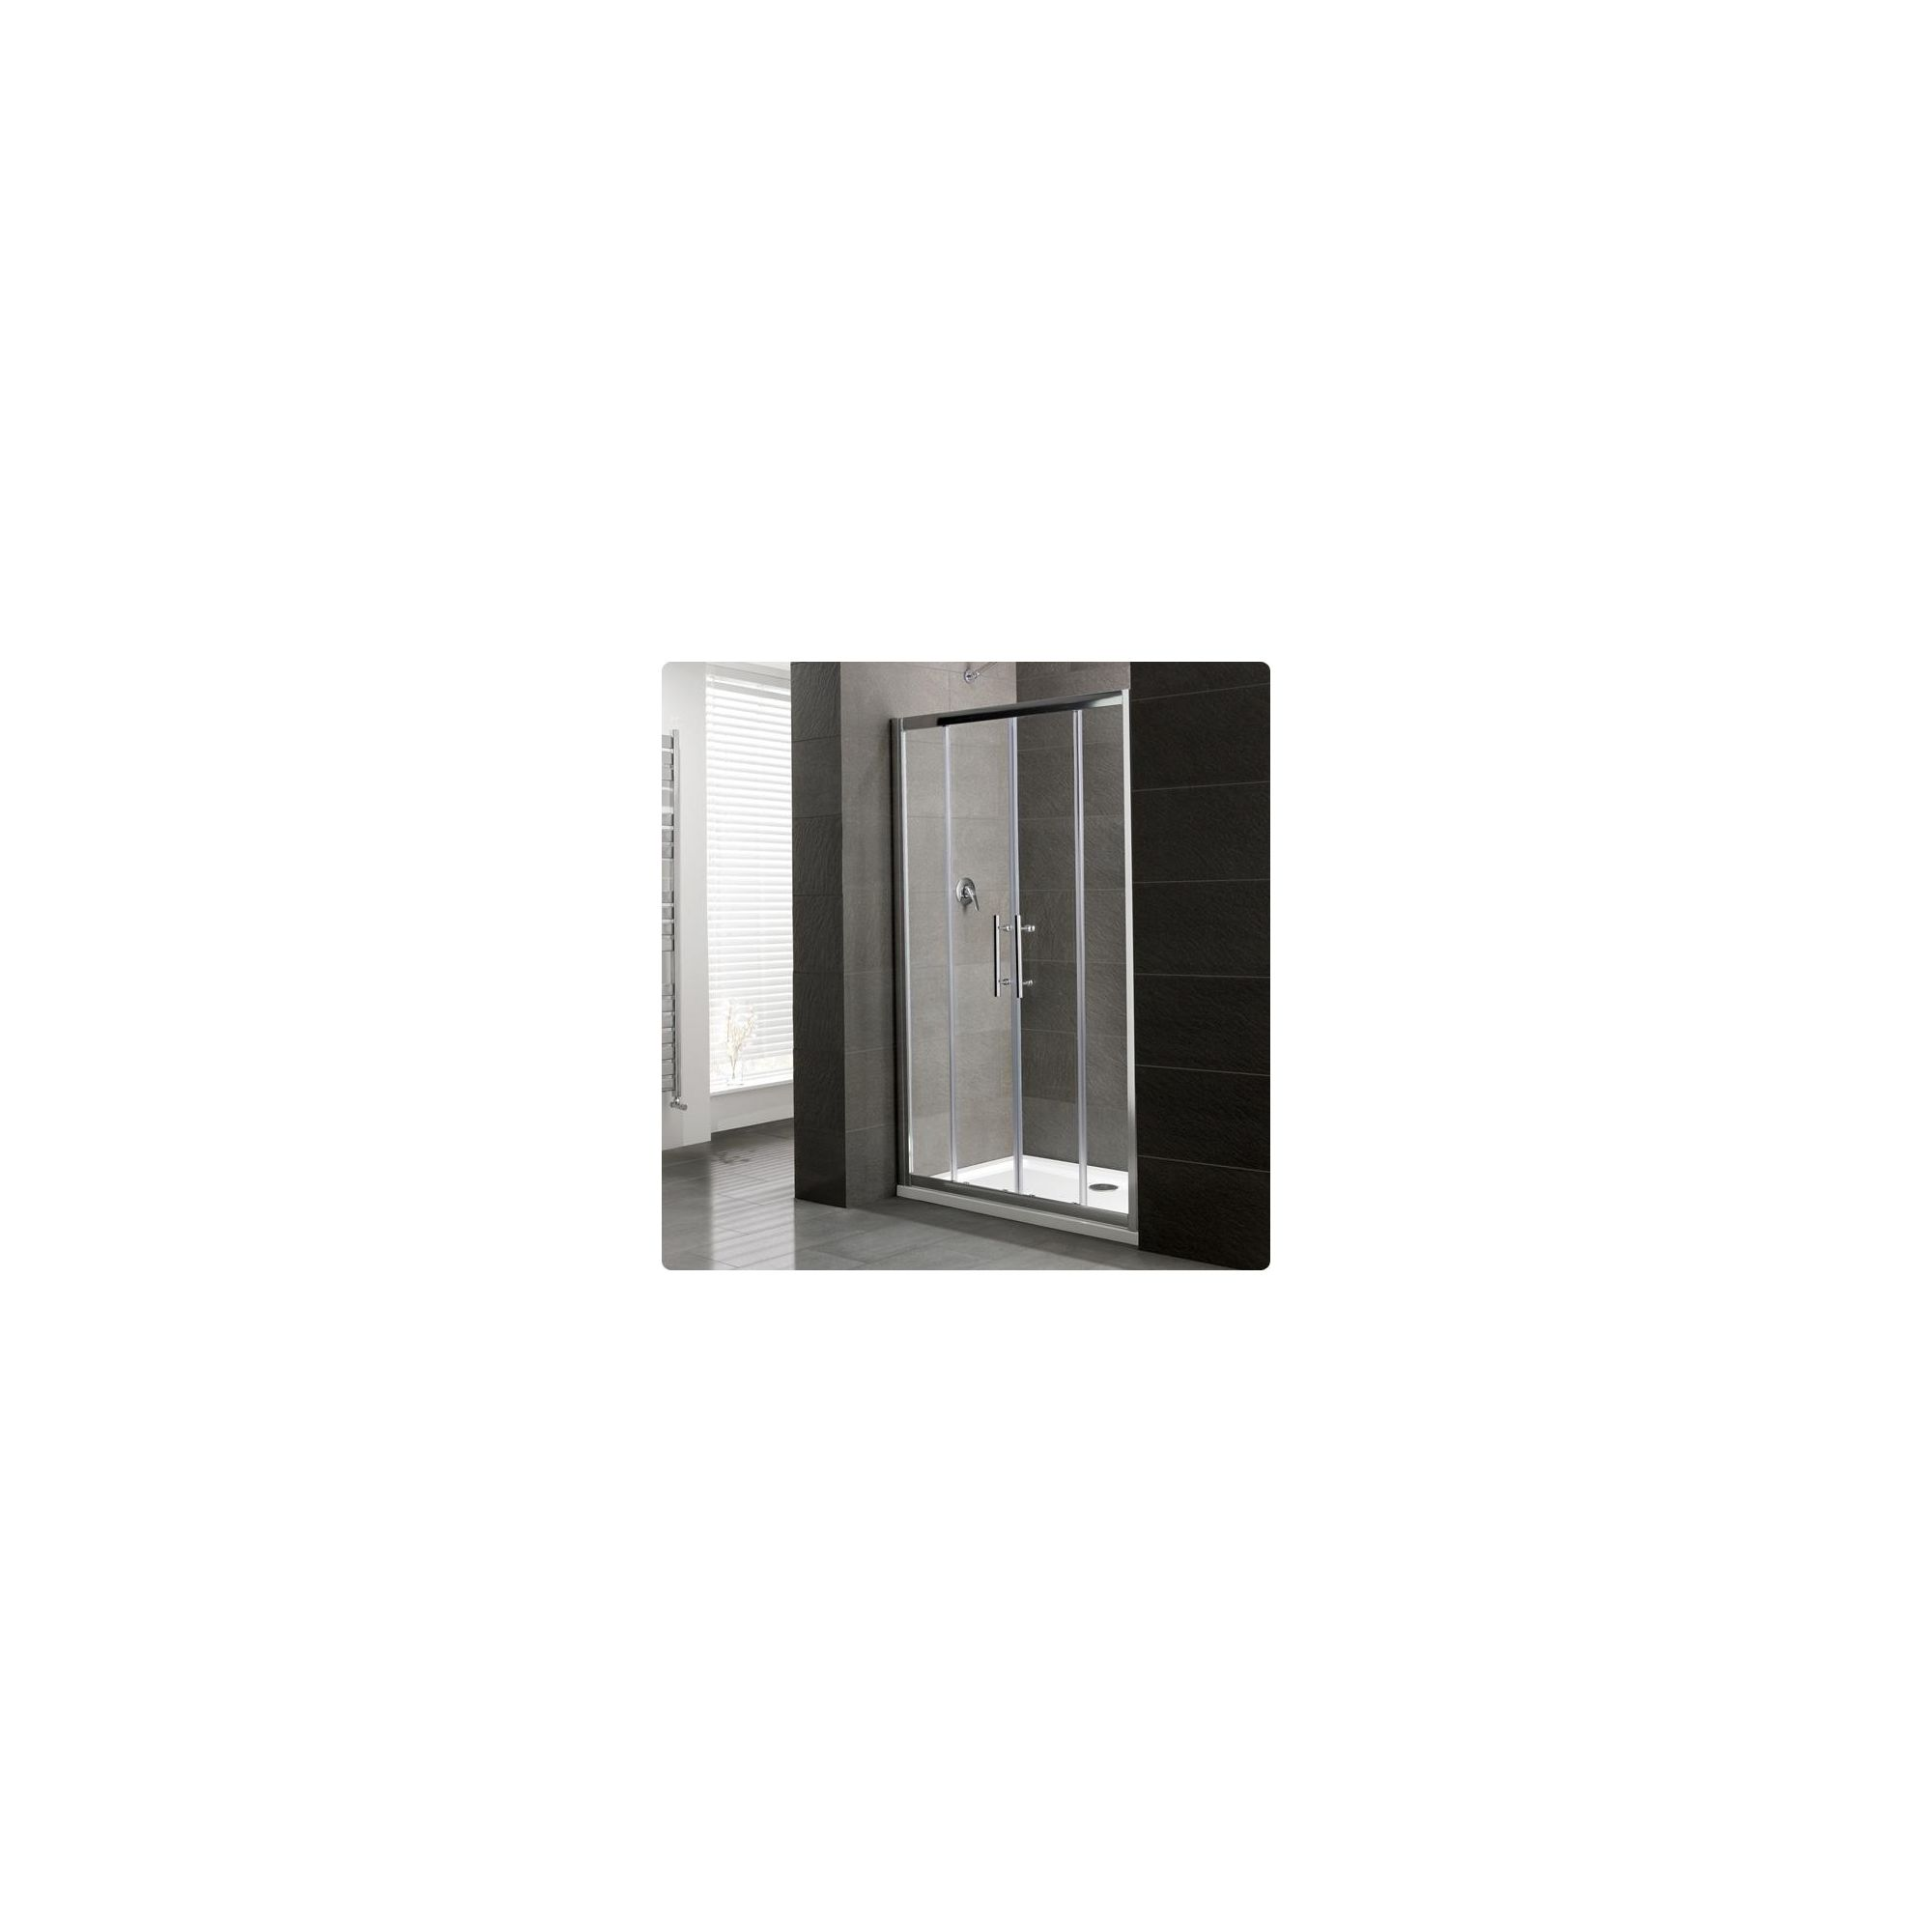 Duchy Select Silver Double Sliding Door Shower Enclosure, 1200mm x 900mm, Standard Tray, 6mm Glass at Tesco Direct